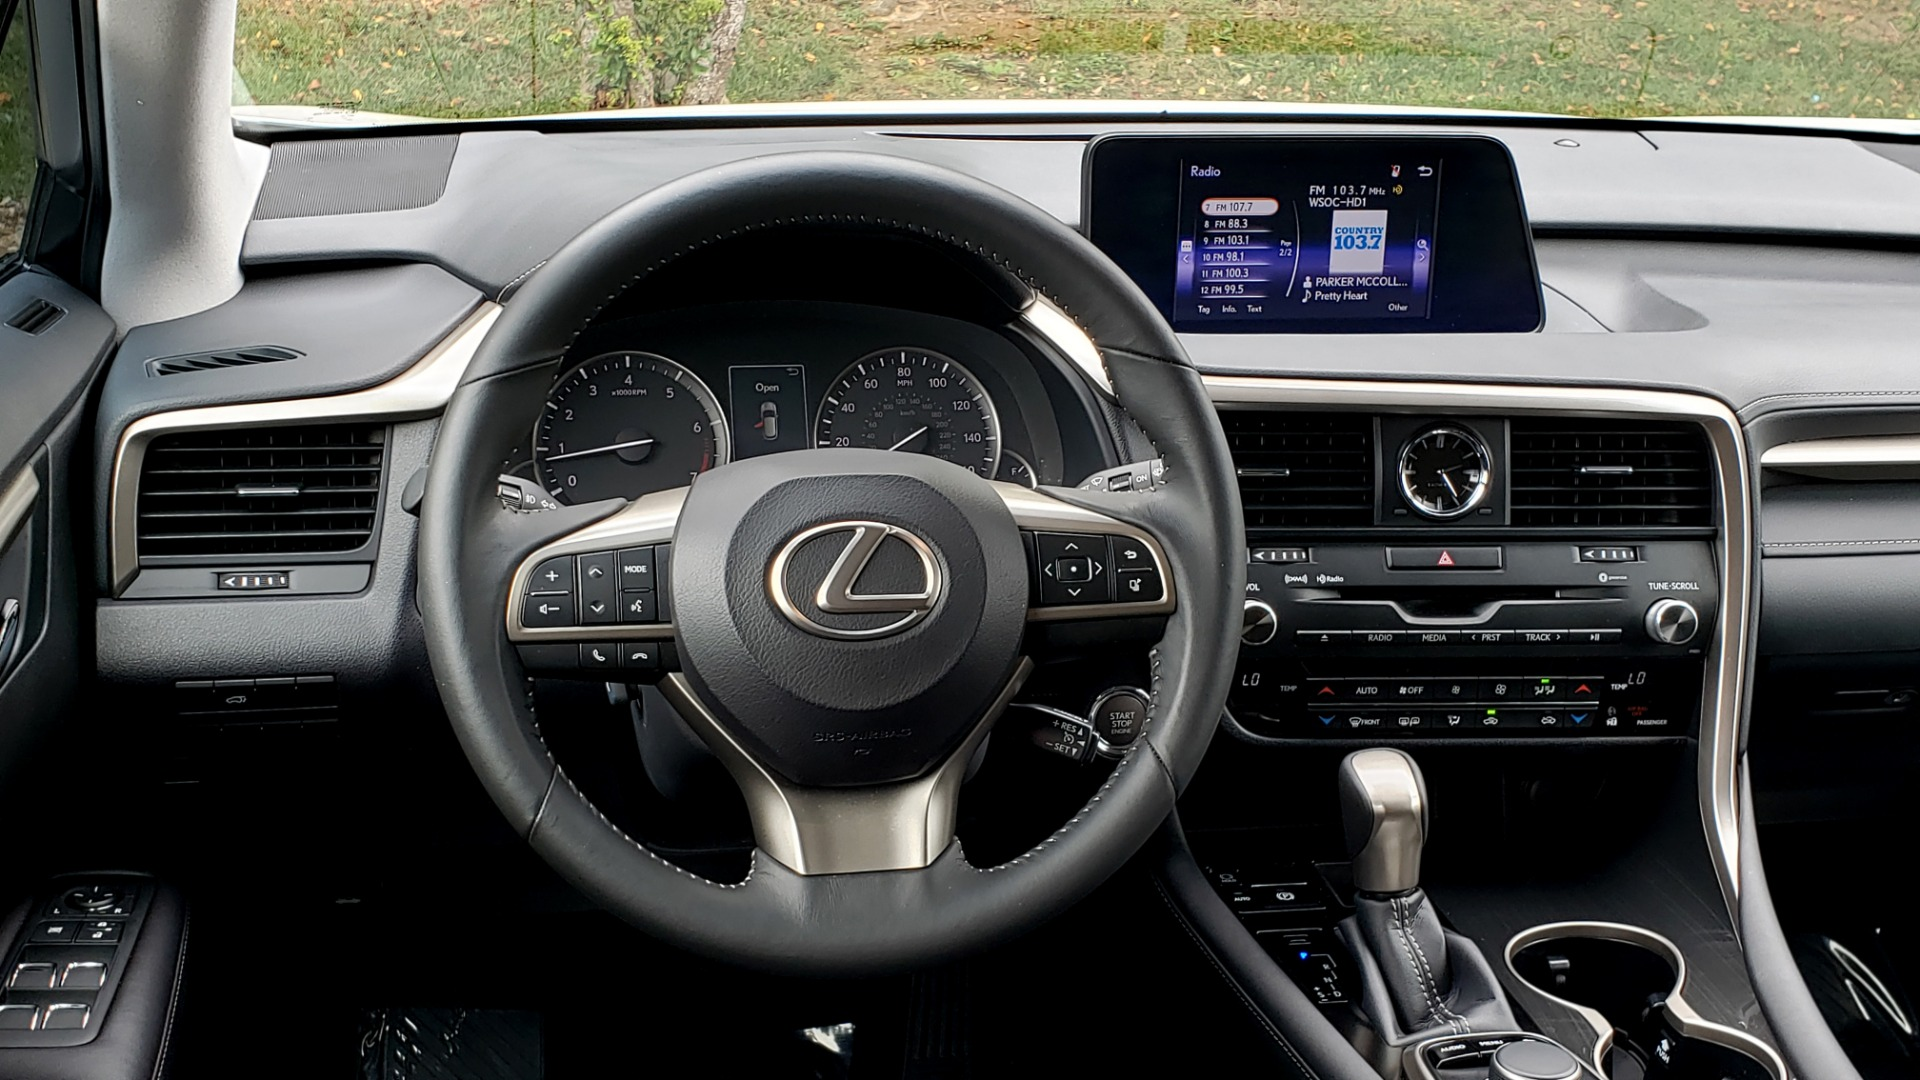 Used 2016 Lexus RX 350 FWD / 4-DR / 3.5L V6 / 8-SPD AUTO / LEATHER / REARVIEW for sale $31,995 at Formula Imports in Charlotte NC 28227 40